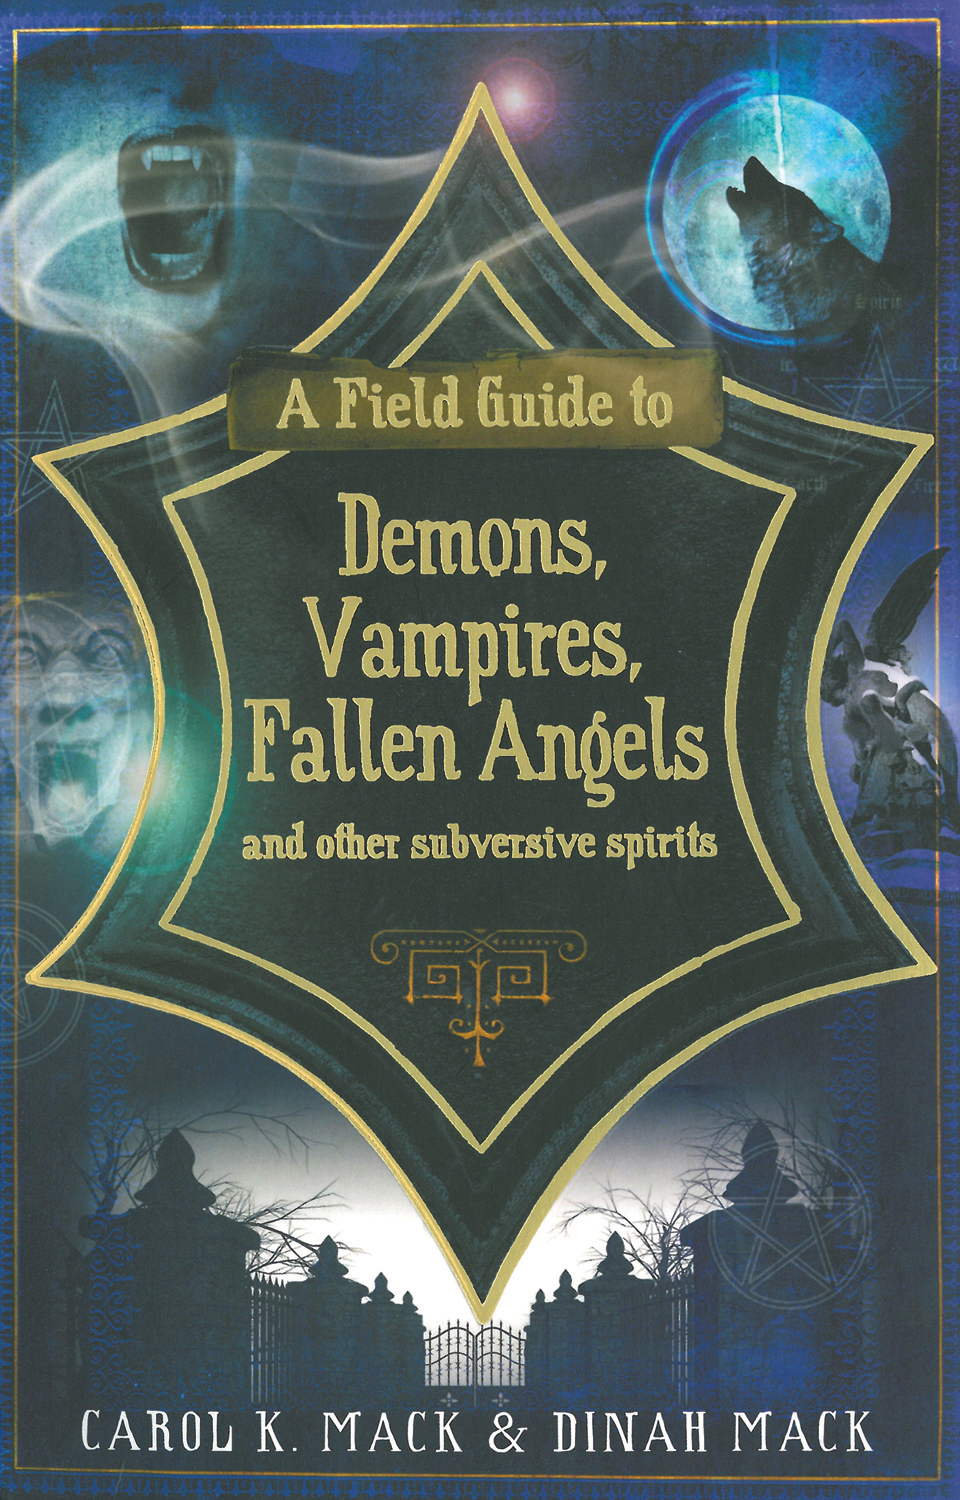 A Field Guide to Demons, Vampires, Fallen Angels and Other Subversive Spirits By: Carol K. Mack Dinah Mack